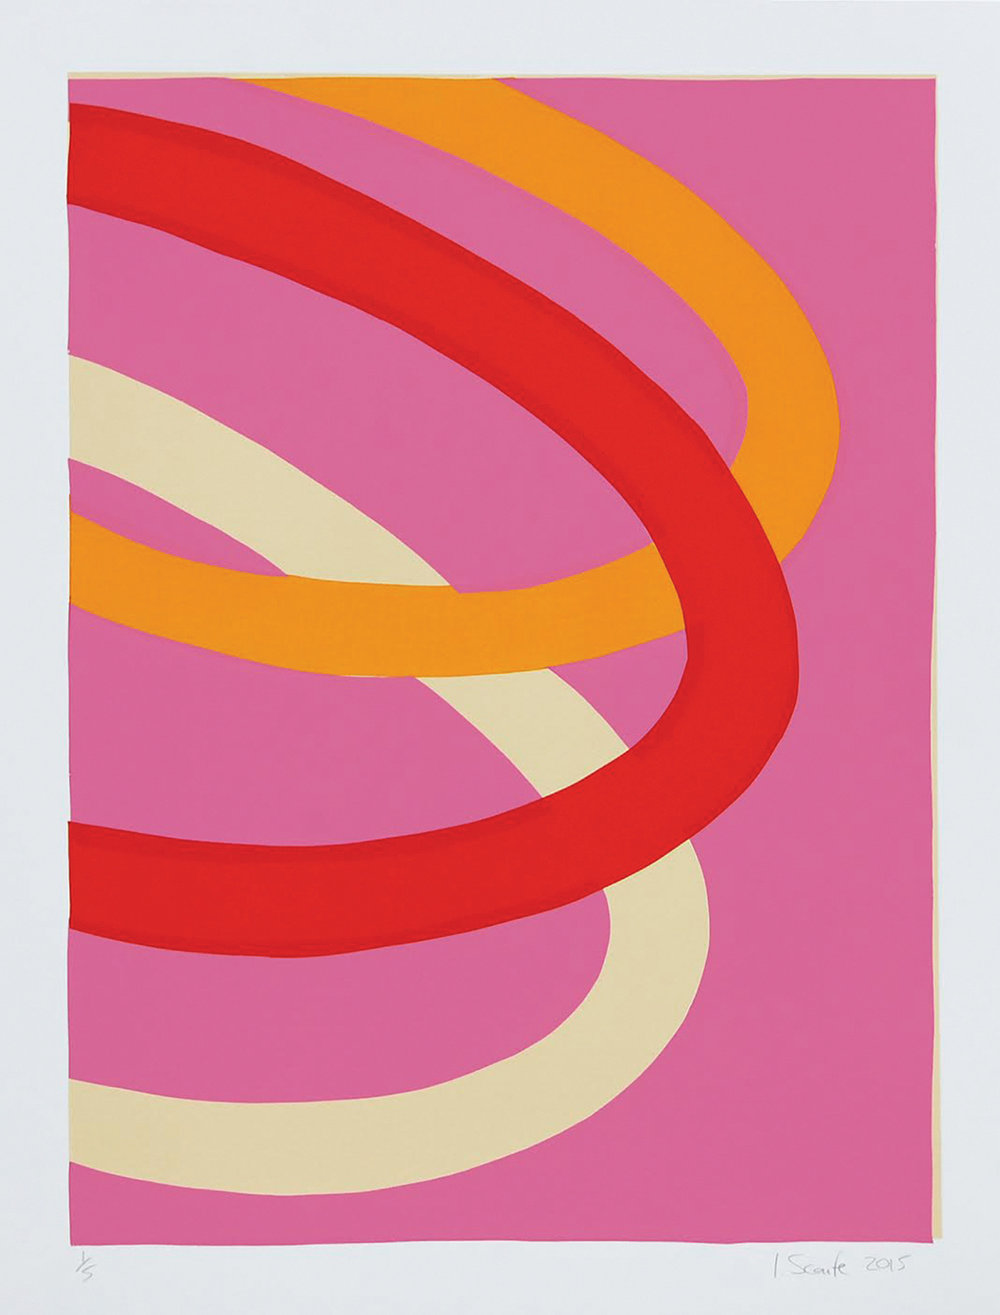 """Pink Loops""  Screenprint,  56 x 41.5cm  2015"